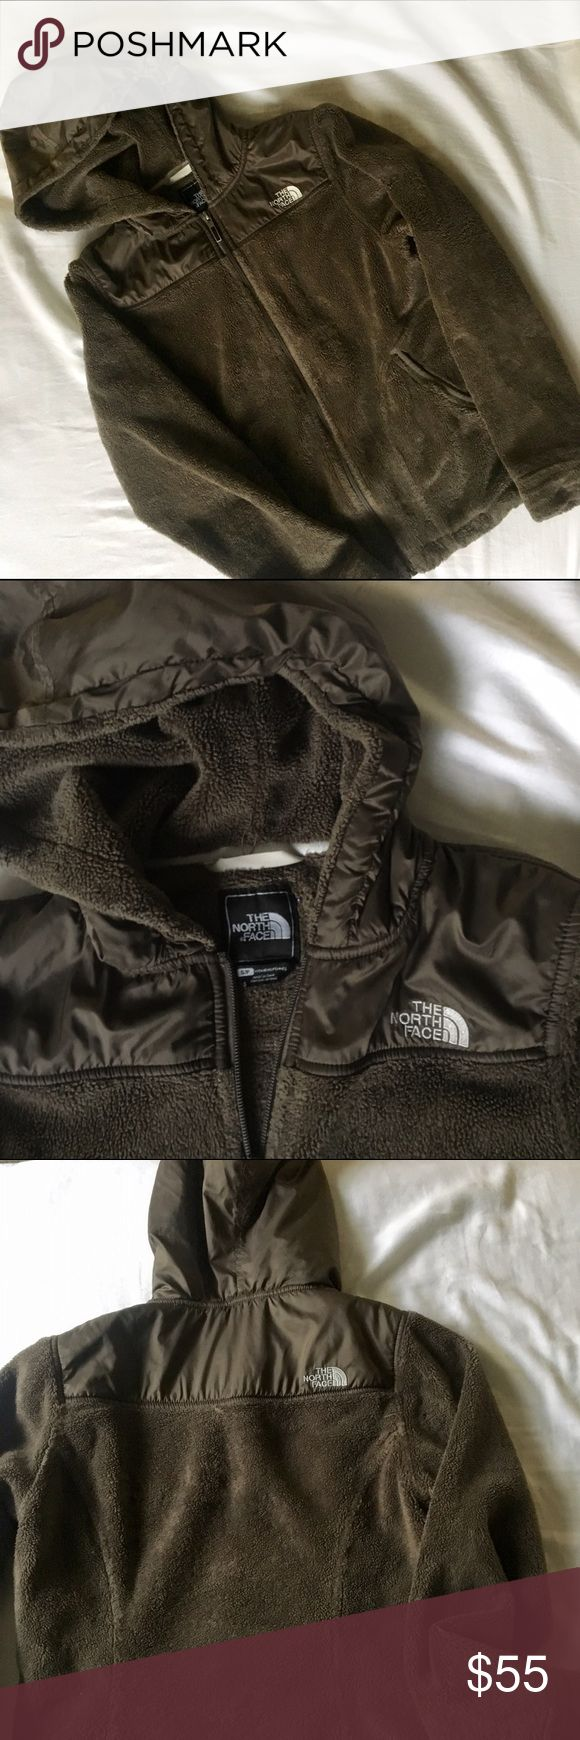 """Brown North Face Oso Hoodie Perfectly worn in soft Northern Face jacket. No stains or tears. Hooded and can be adjusted at the bottom. Great for girls with brown or hazel eyes, the color will make them pop for sure! Just too small for me. Color """"bittersweet brown"""" The North Face Jackets & Coats"""